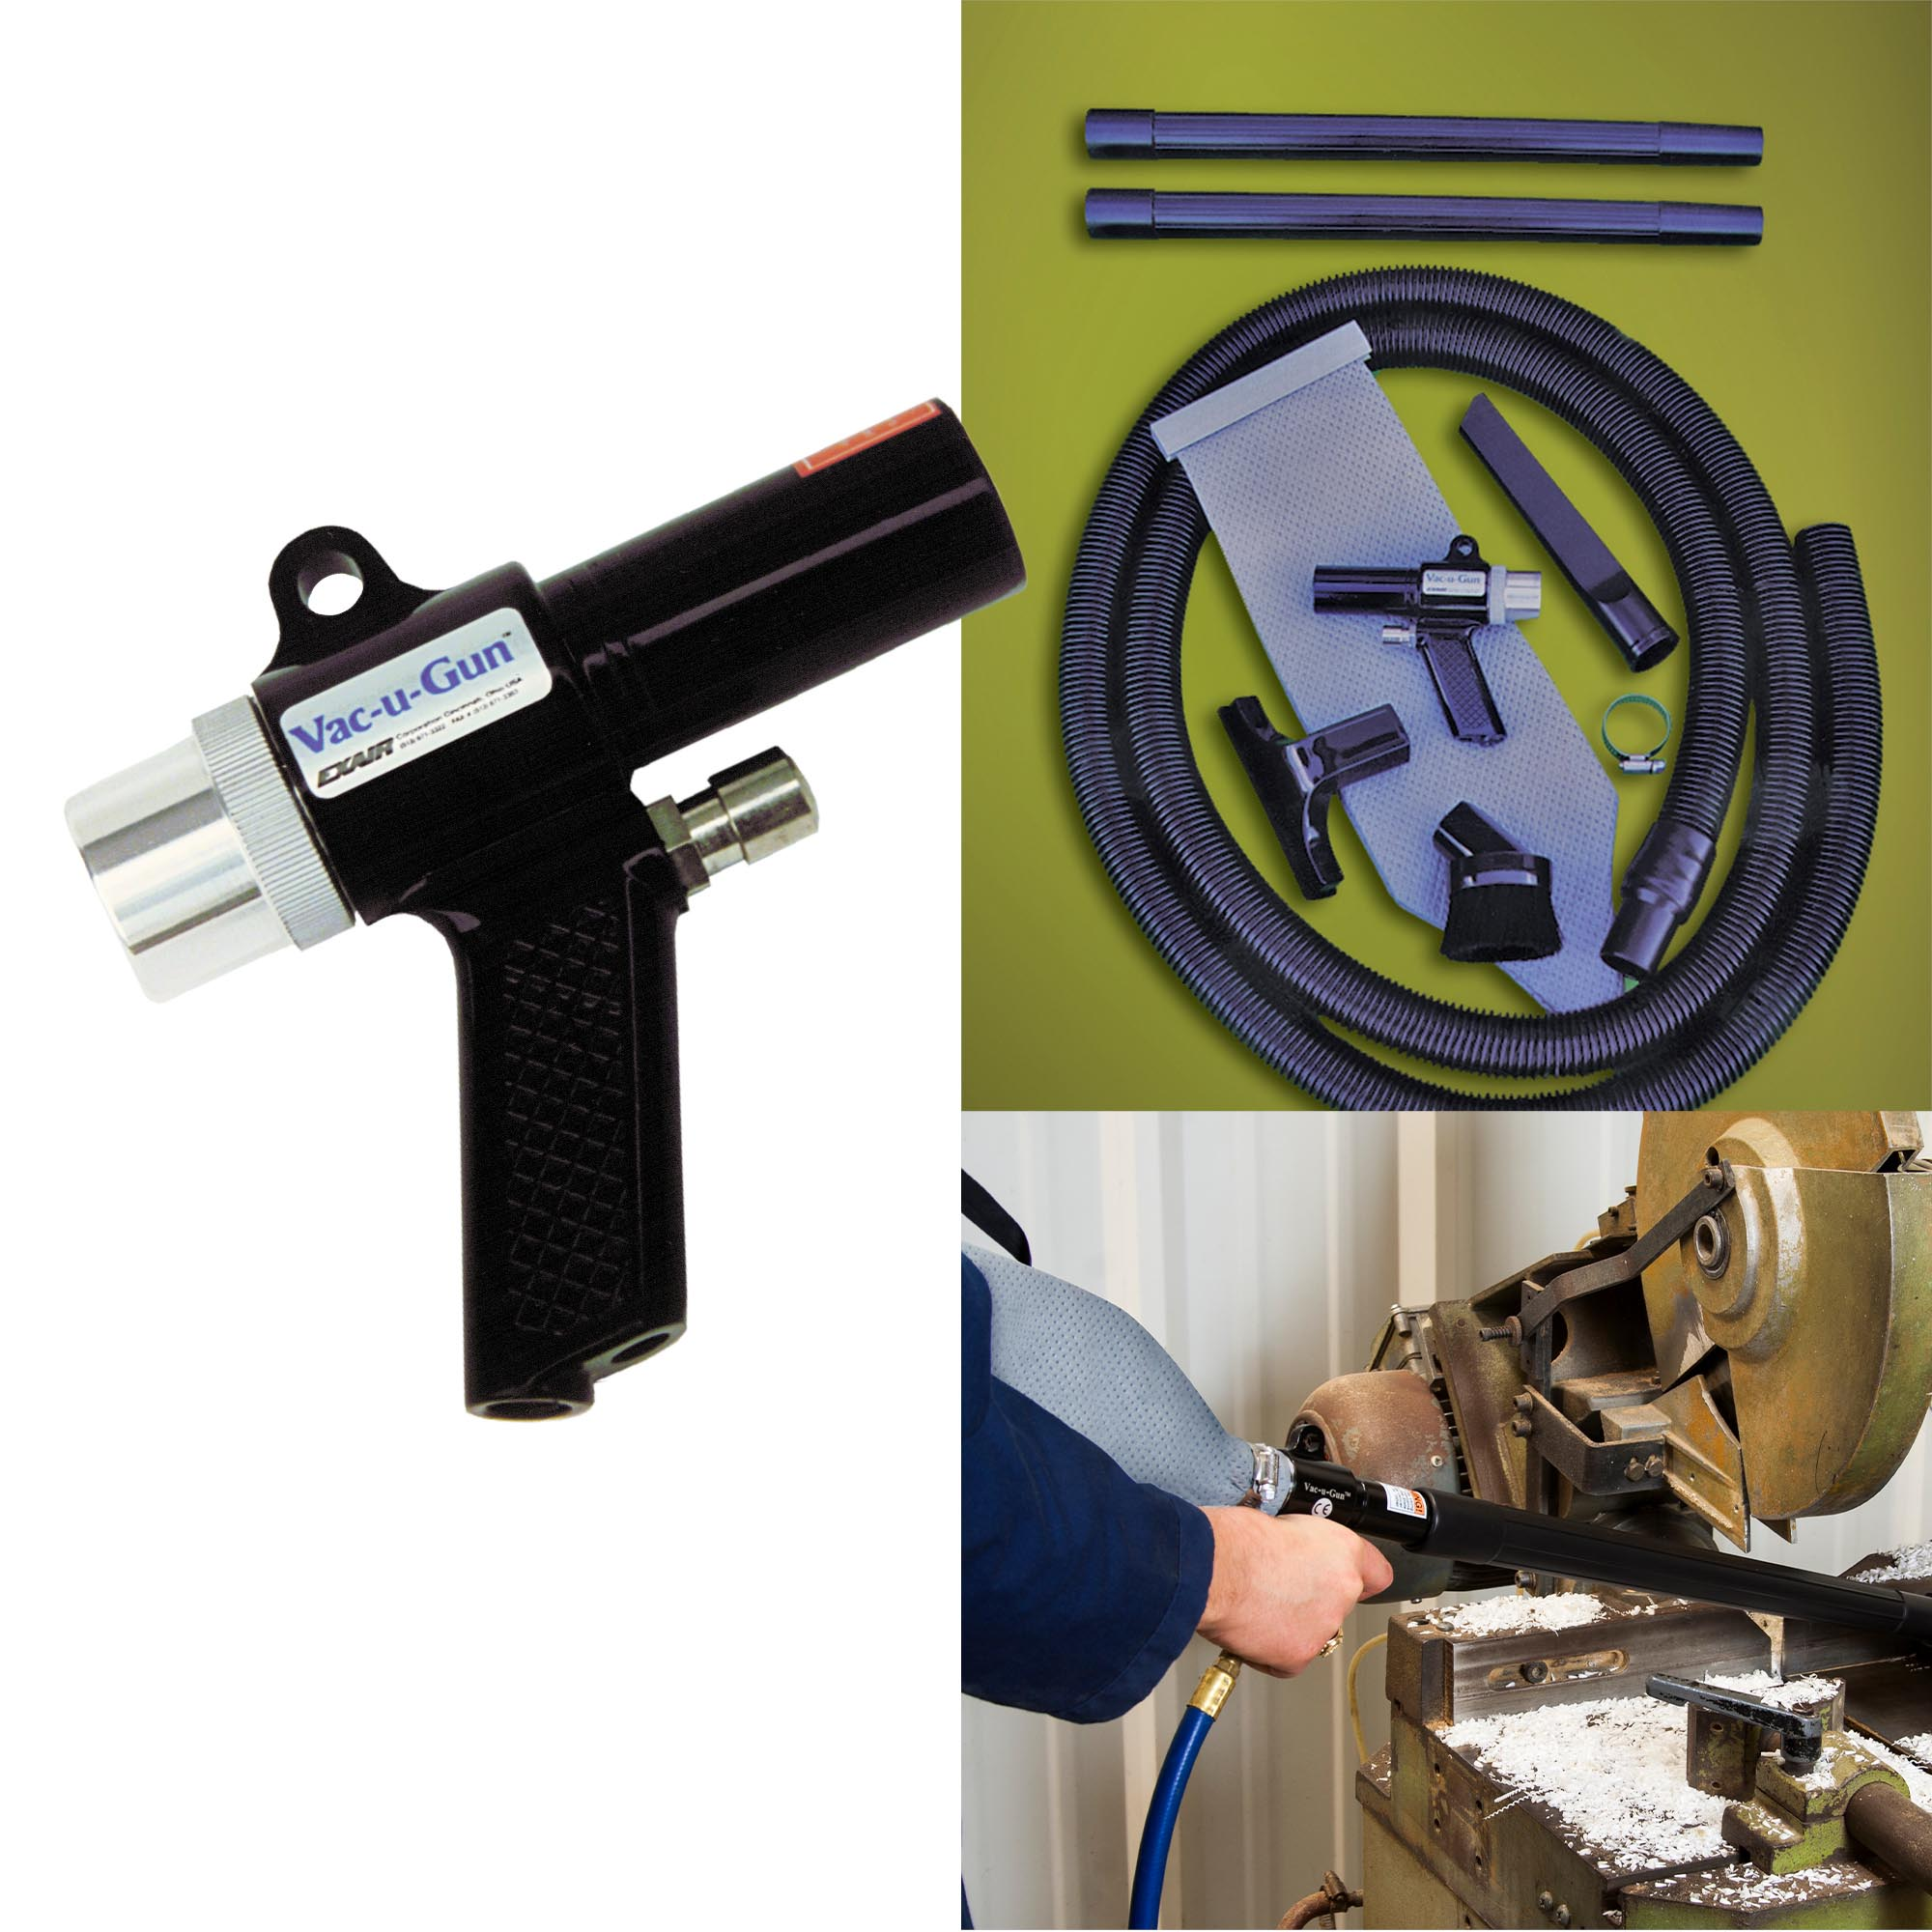 Vac-u-Gun Accessories include filter bags, vacuum hoses, crevice tools, skimmer tools, brush attachments and extensions.